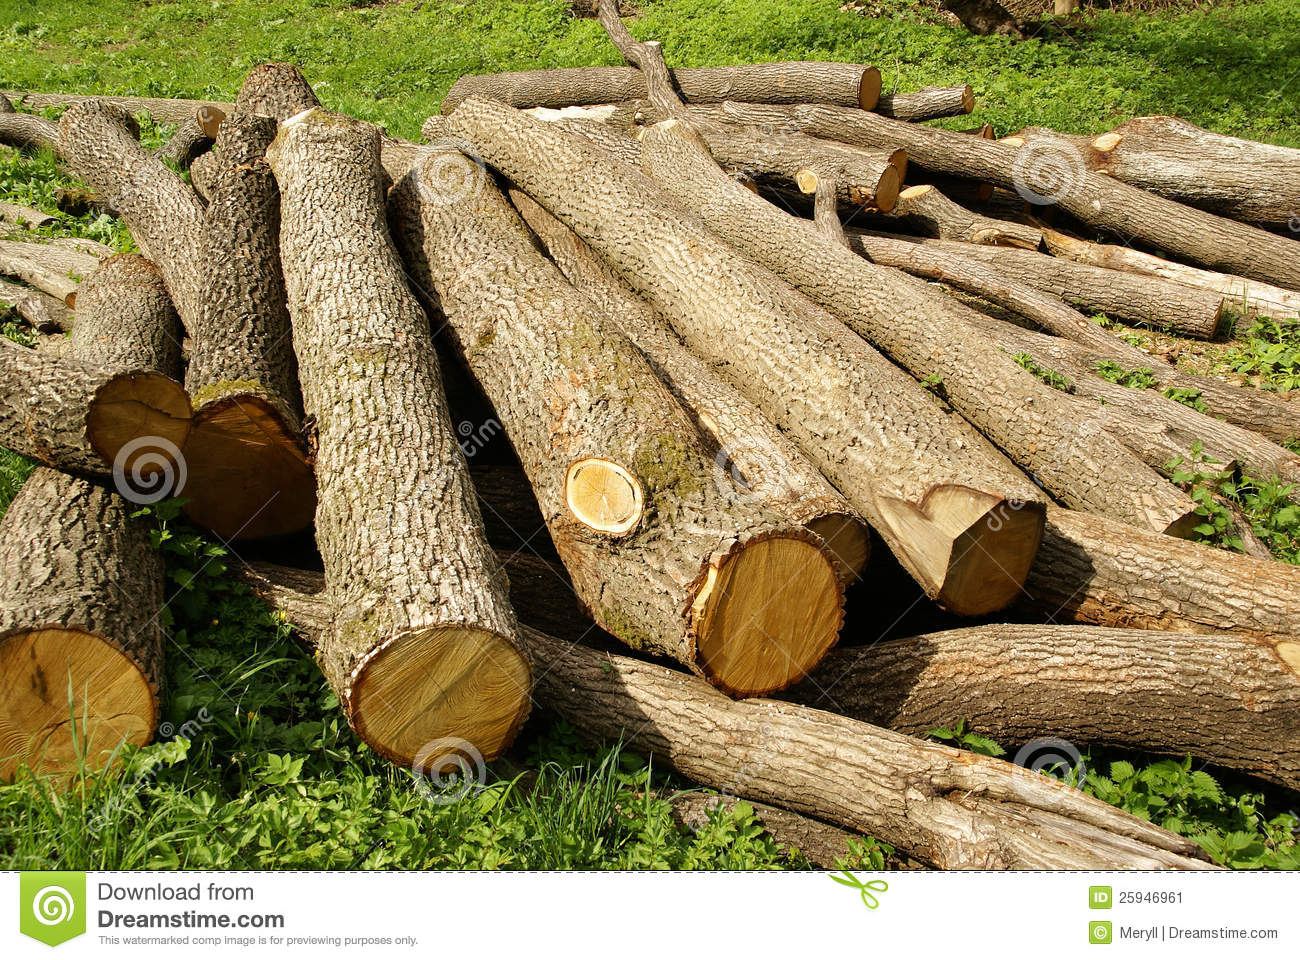 Wood logging logs stock image. Image of stack, forestry - 25946961